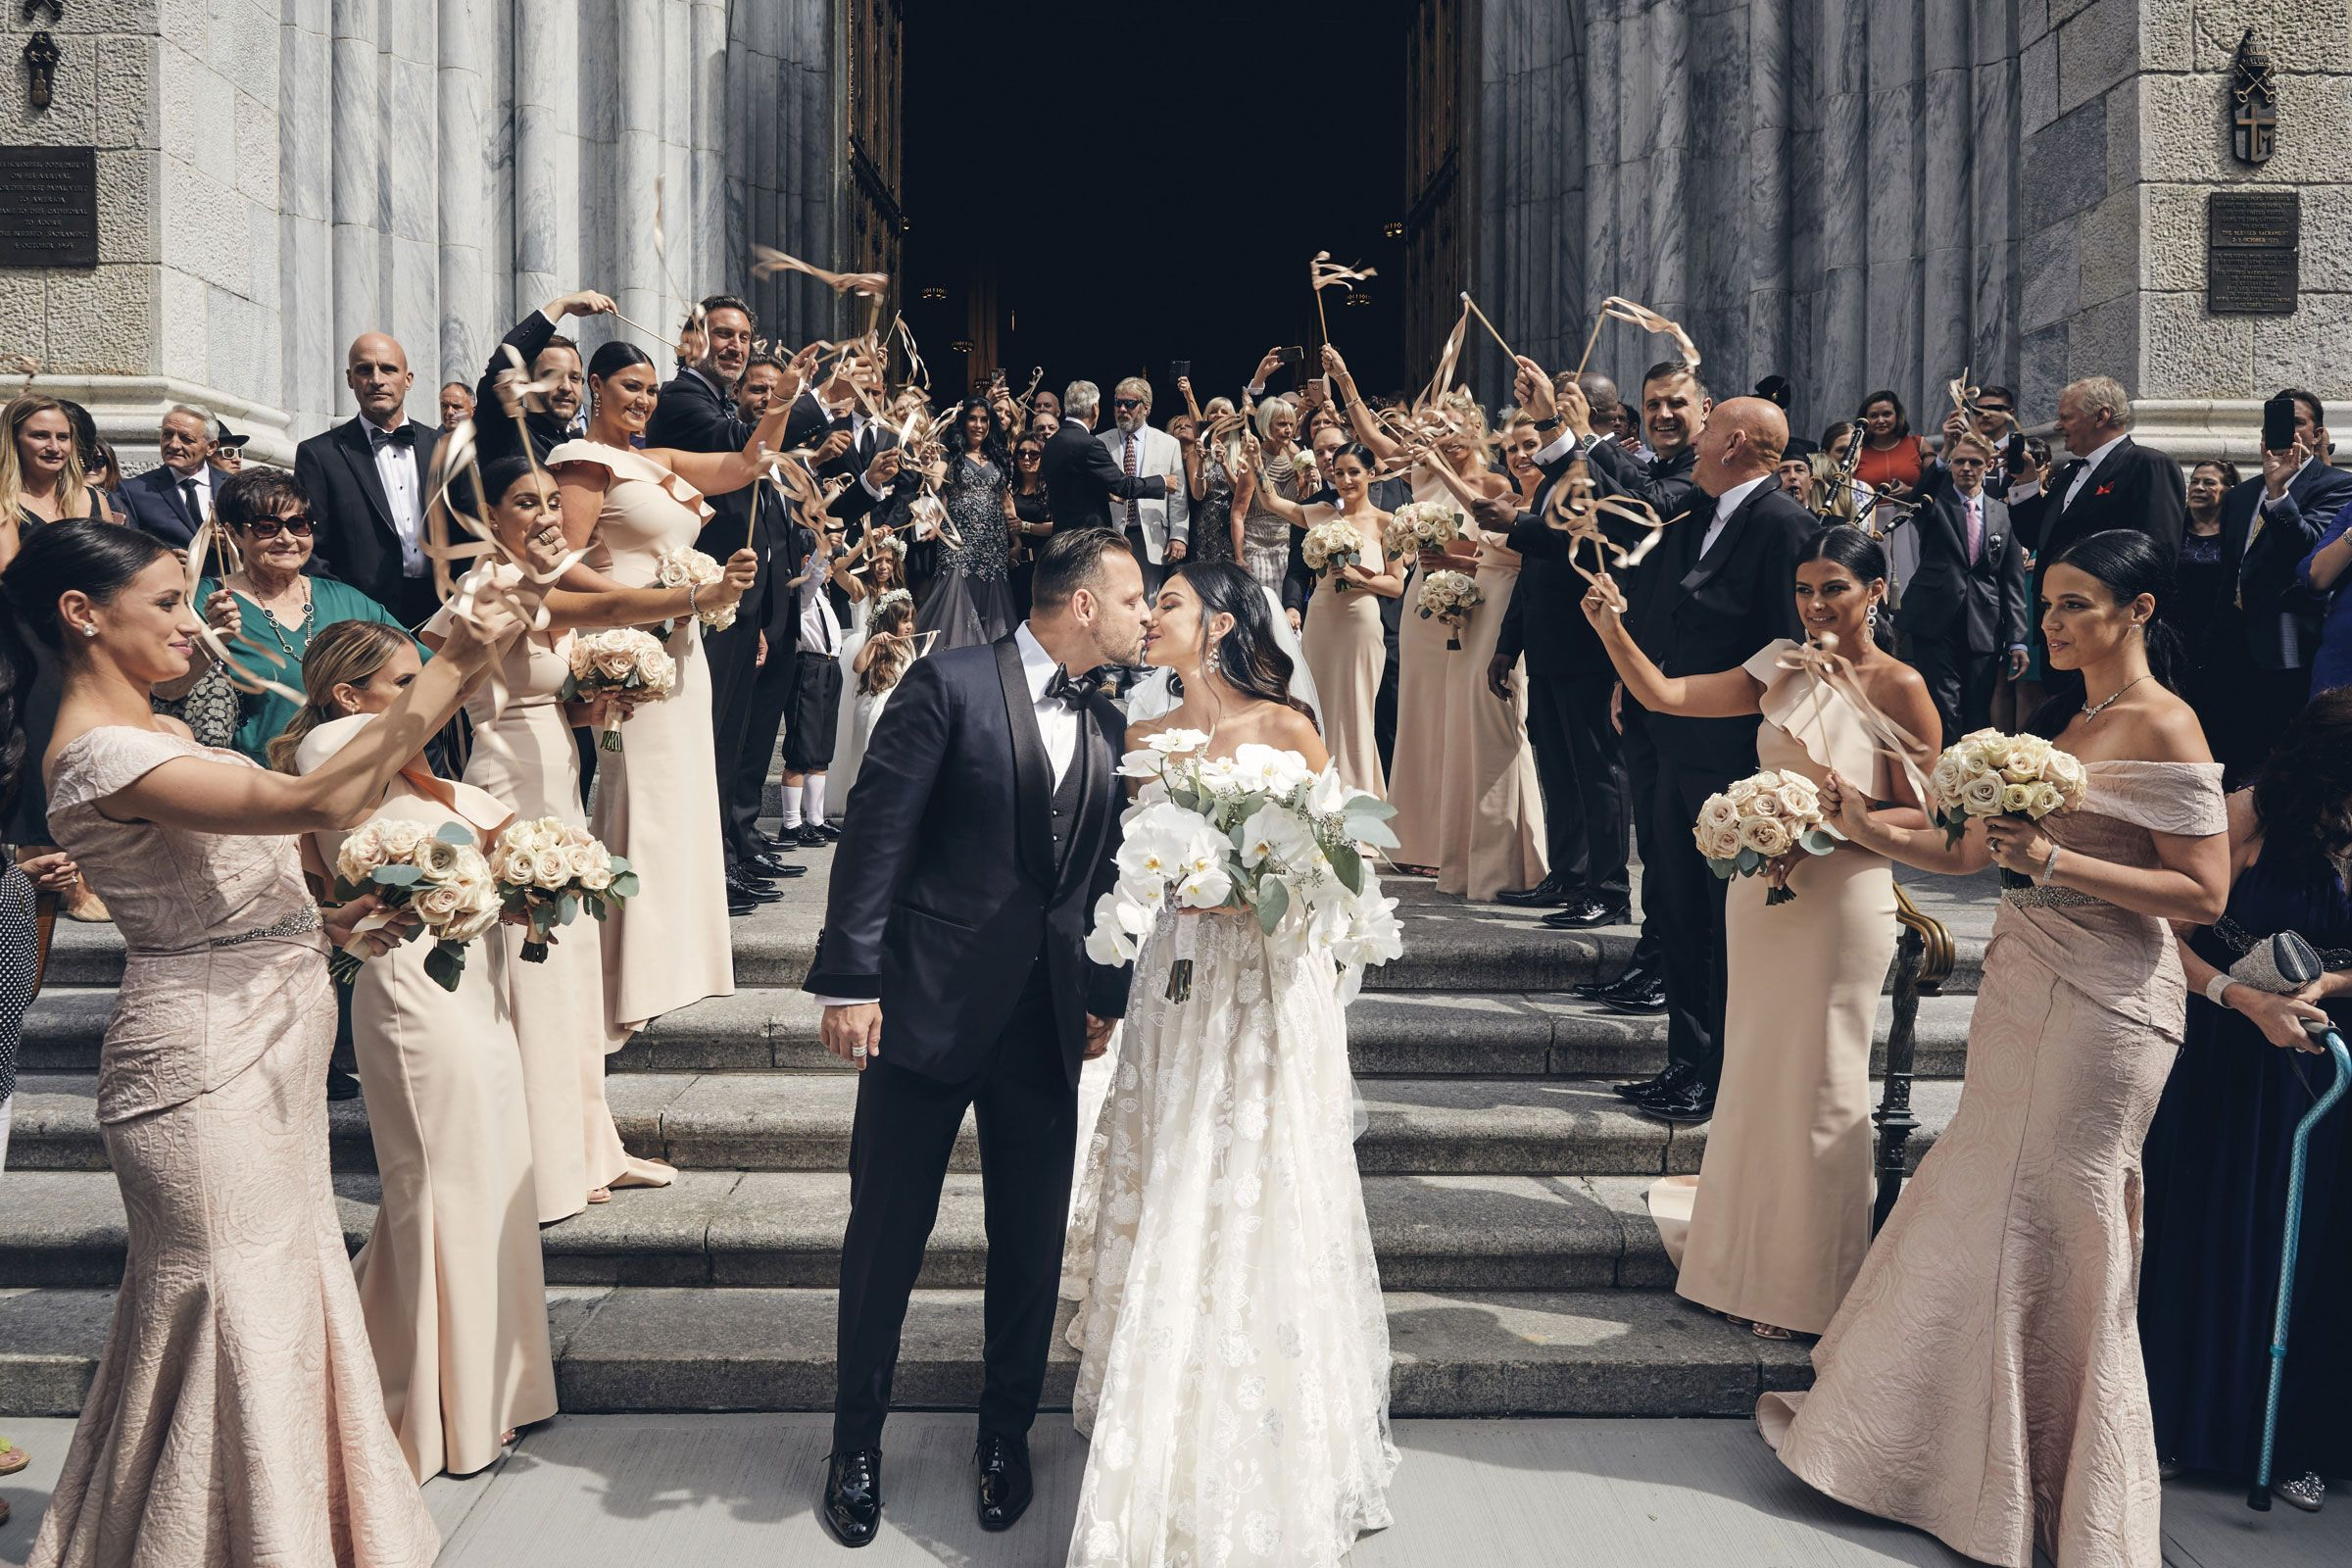 A Blowout Wedding Weekend at Iconic New York Landmarks